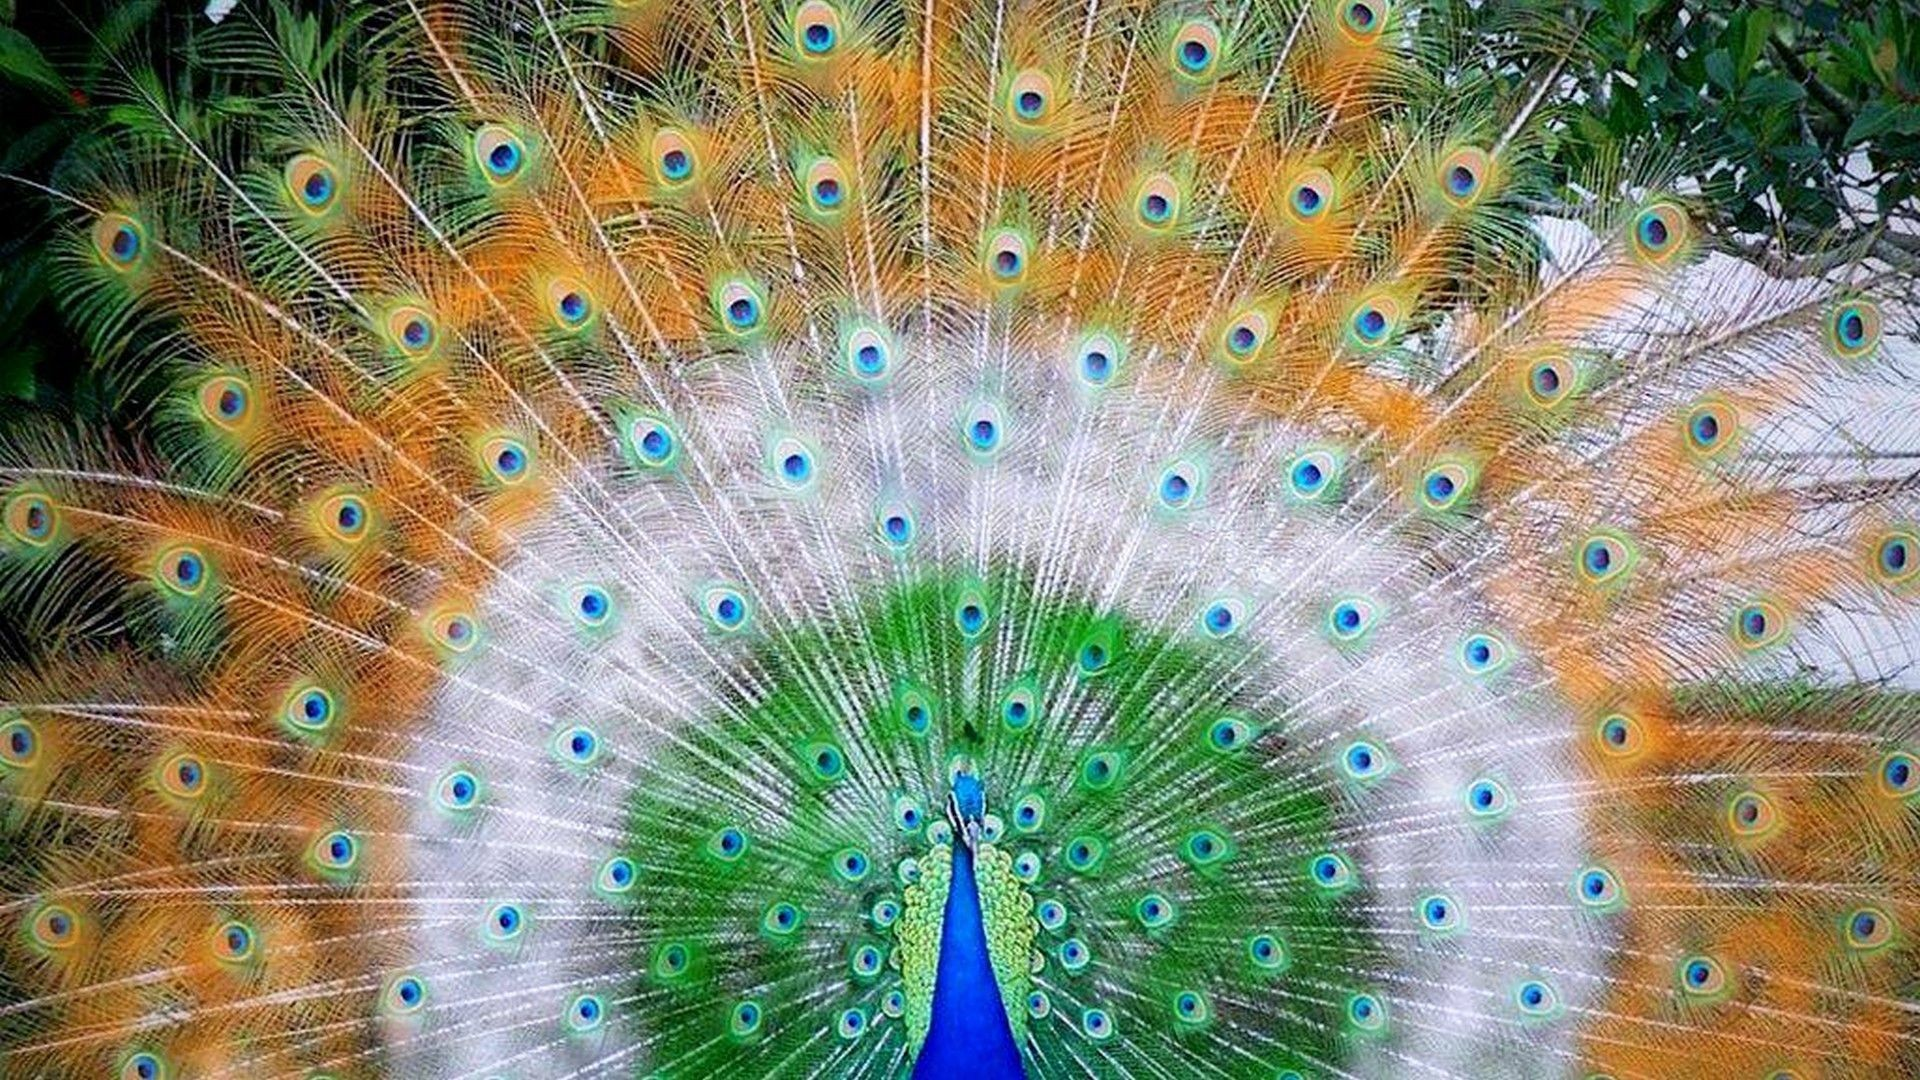 pictures of peacocks